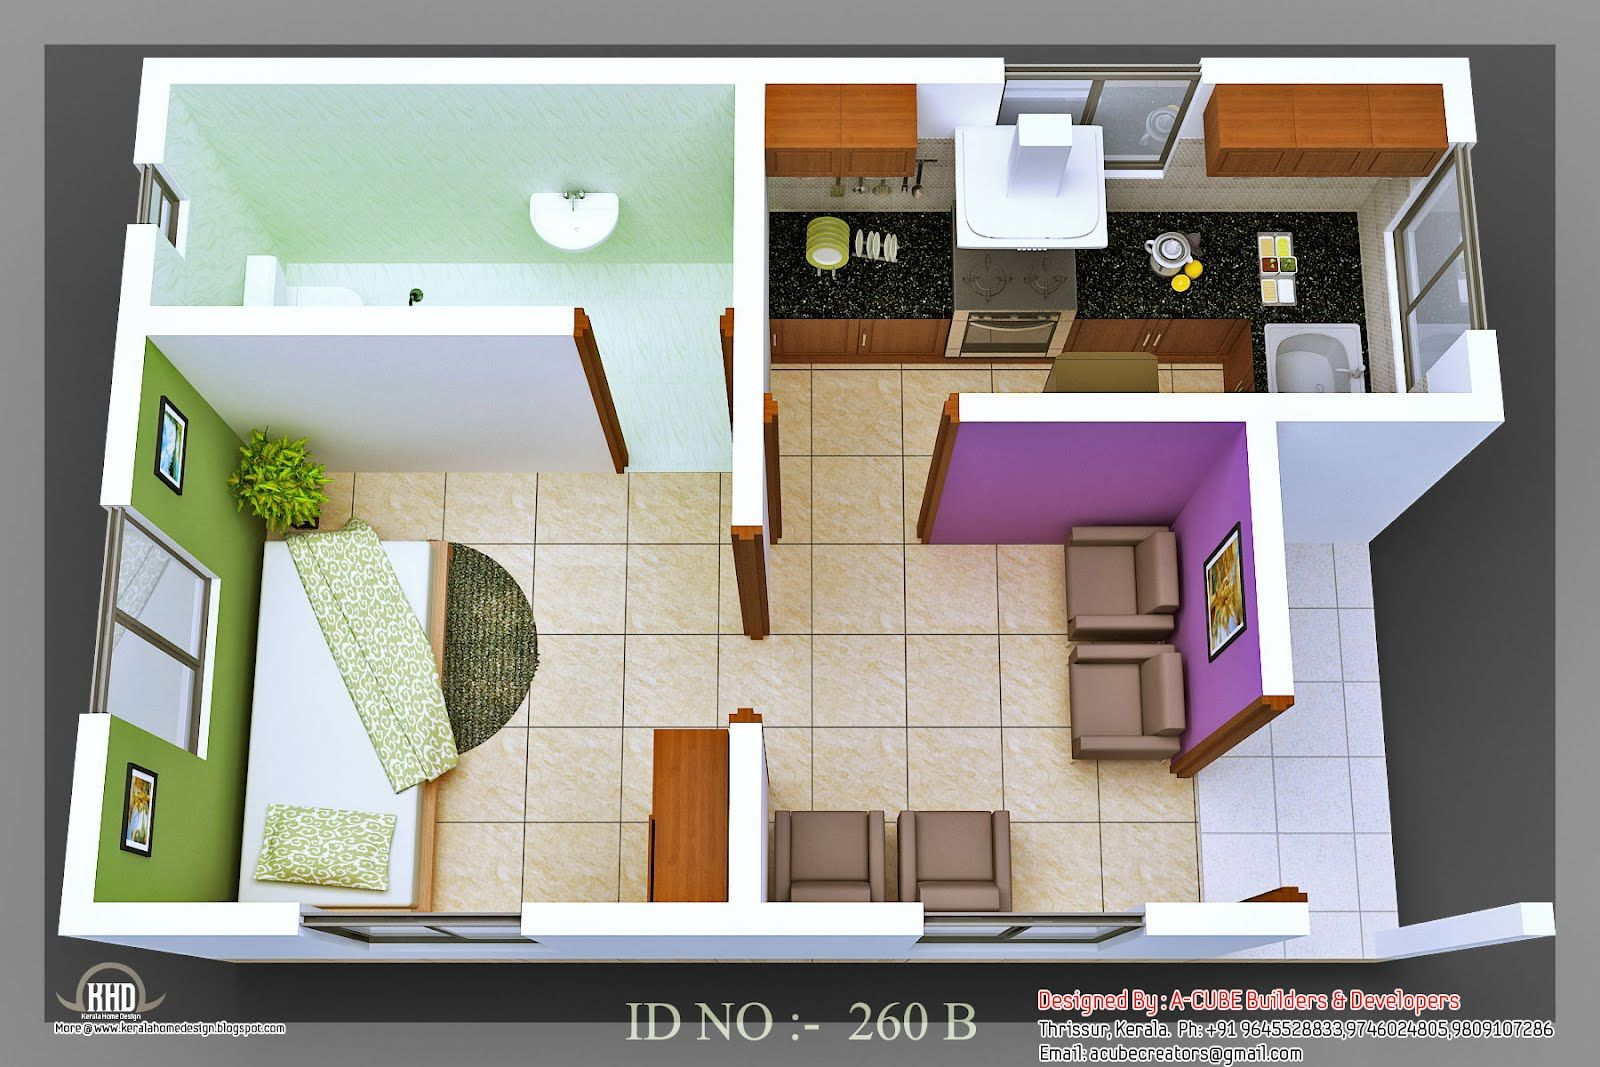 3d isometric views of small house plans kerala home design and - Small House Designs